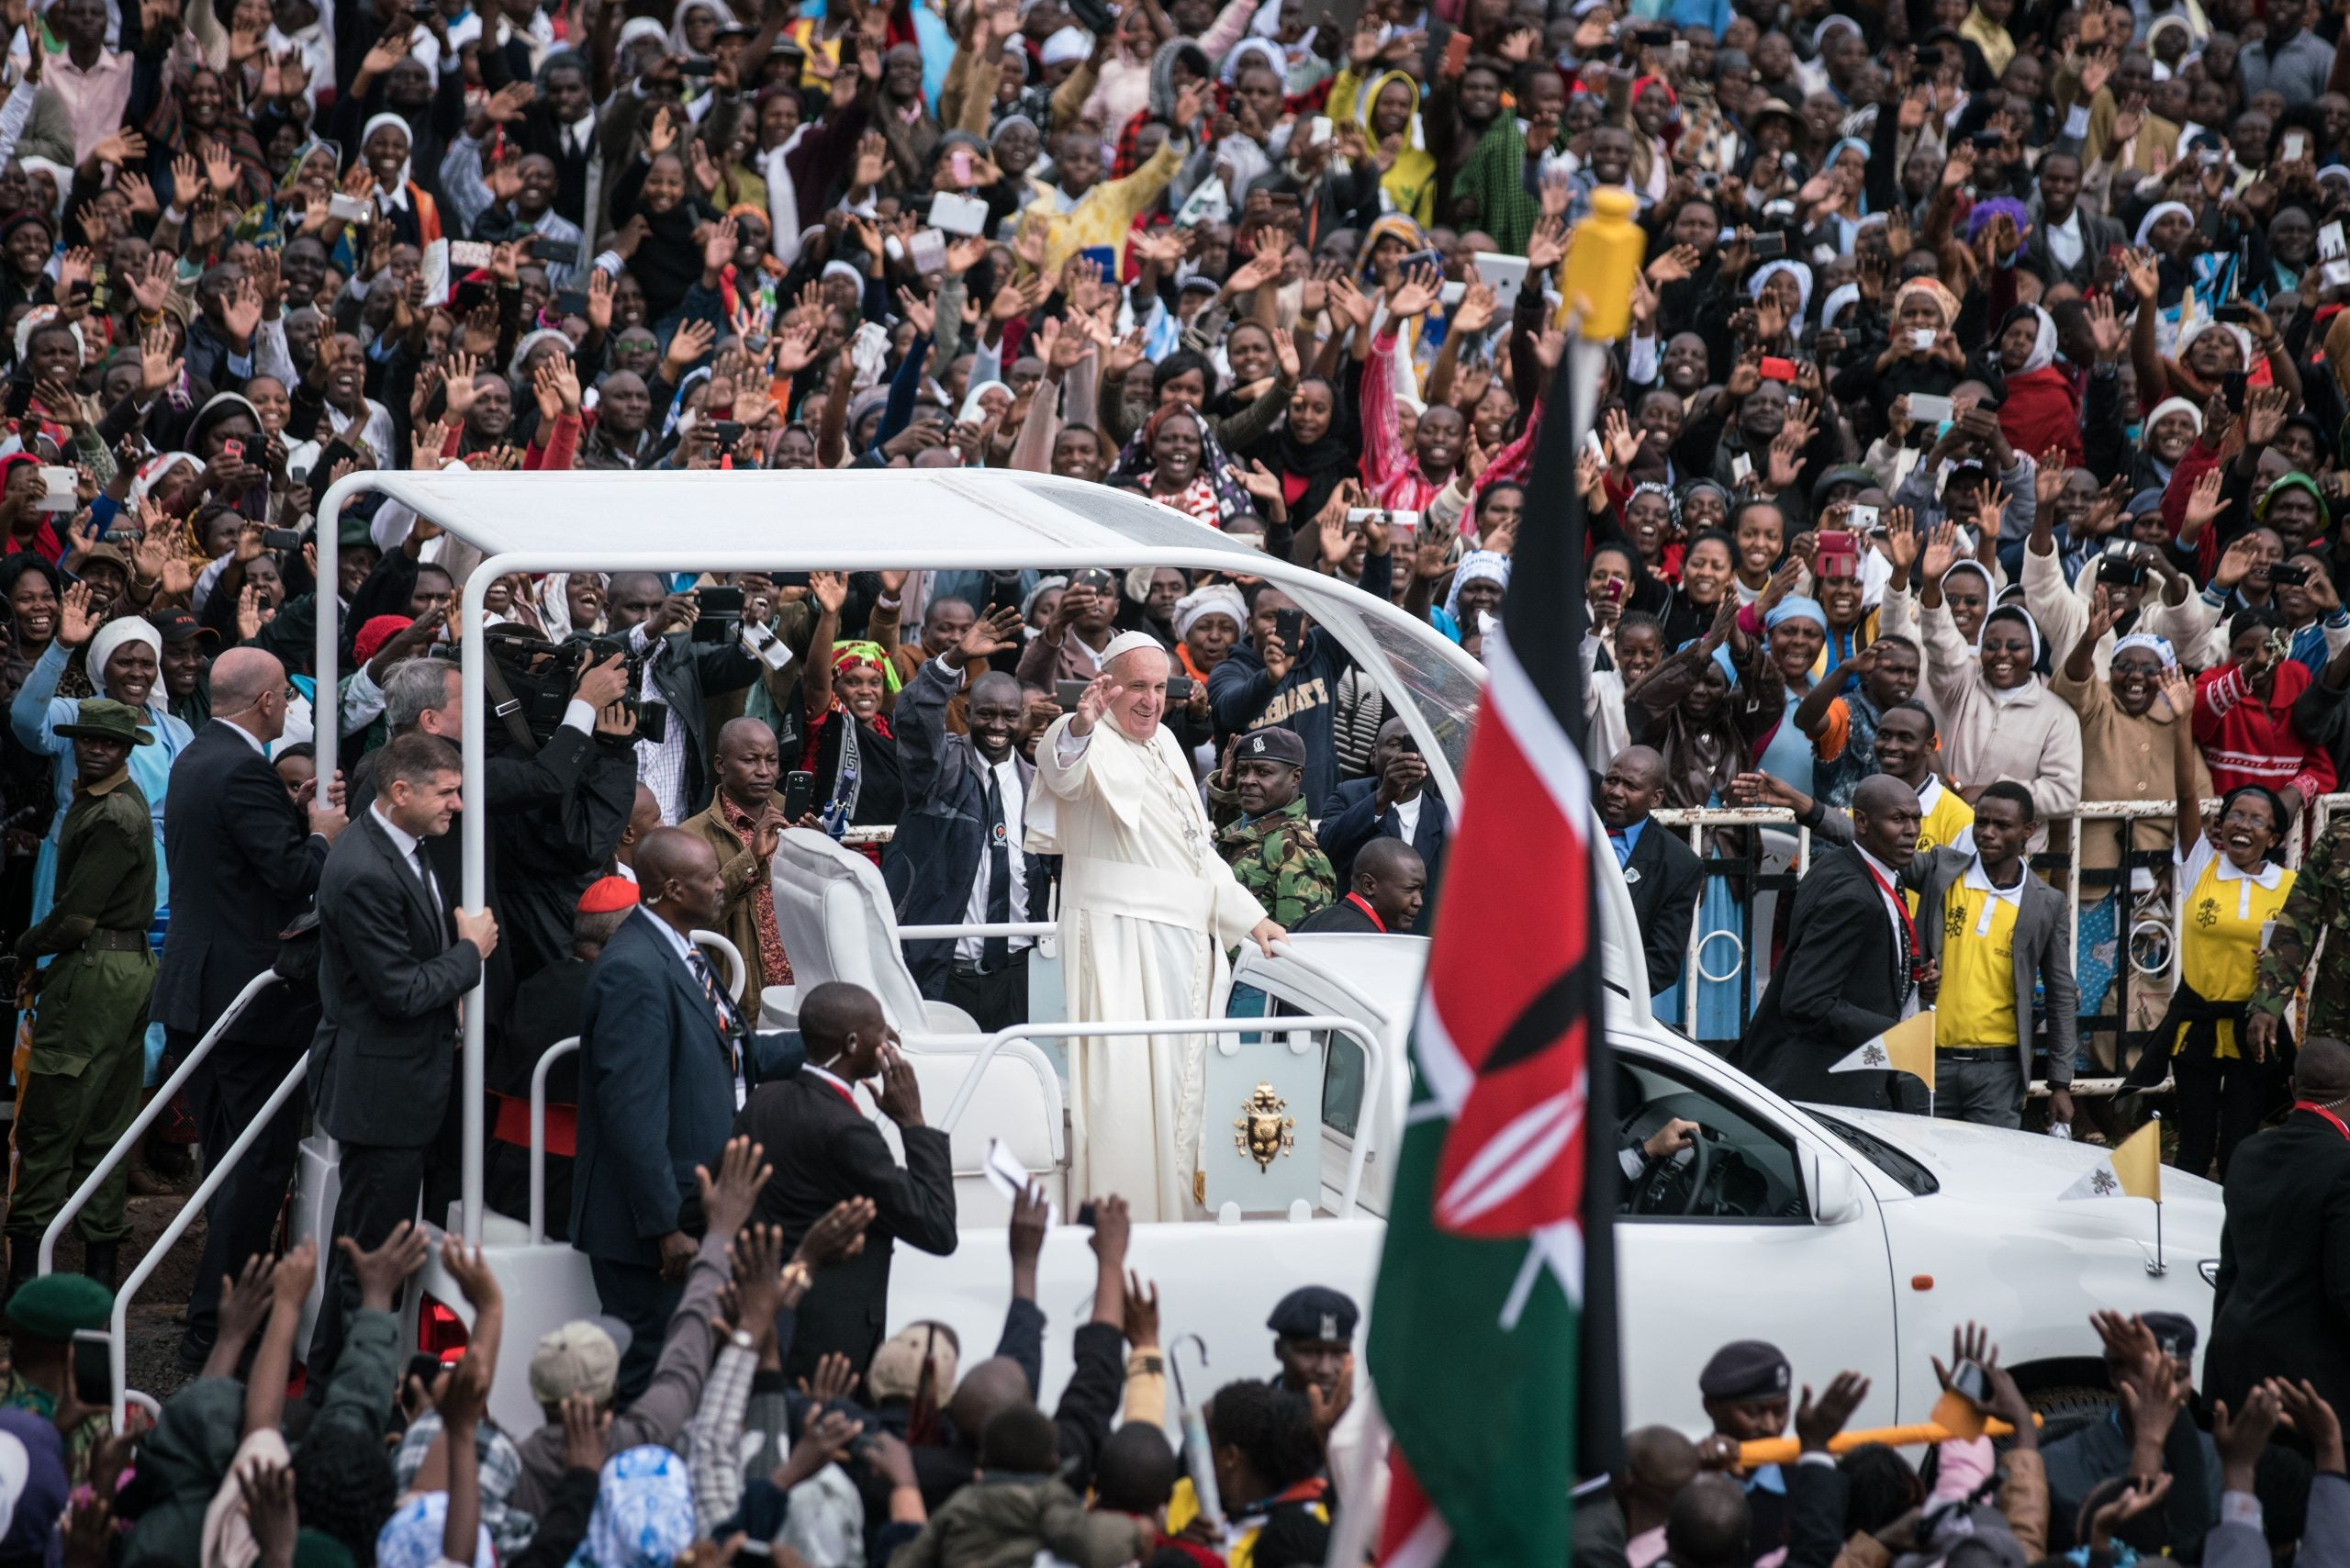 Why the Vatican's refusal to bless same-sex marriage reveals it is placing its future in Africa